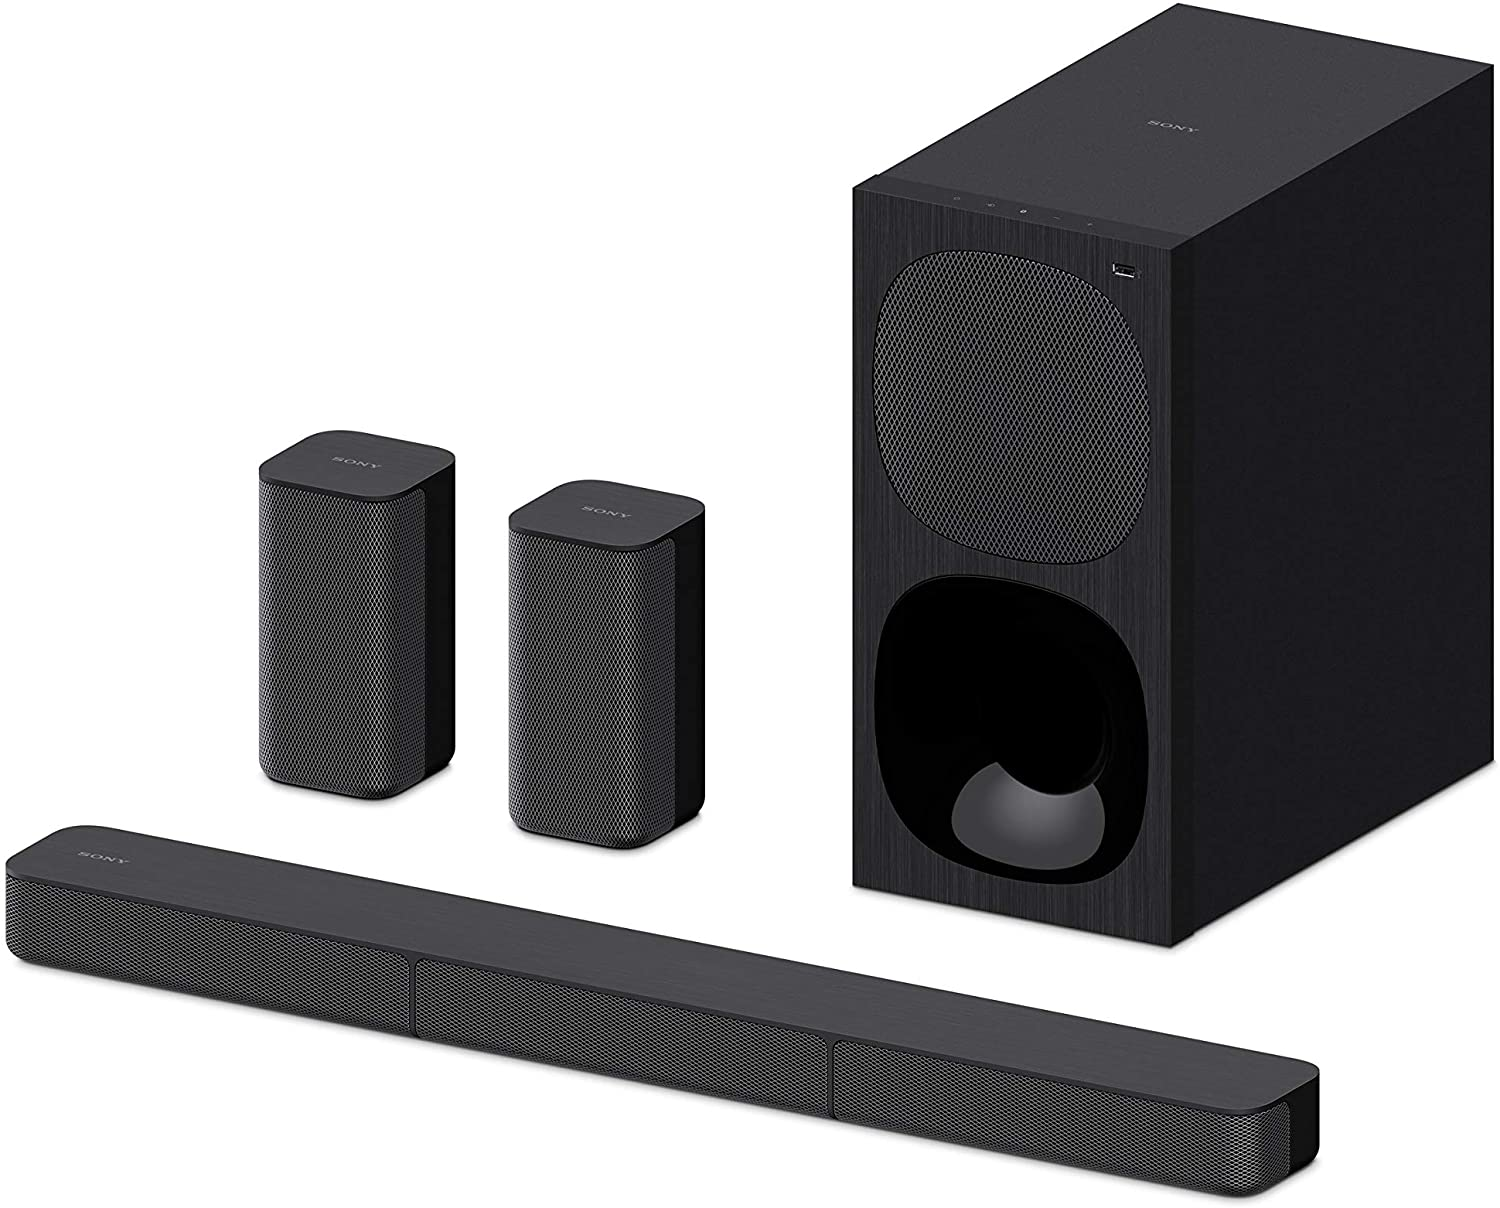 Can You Use a Soundbar with Other Speakers?